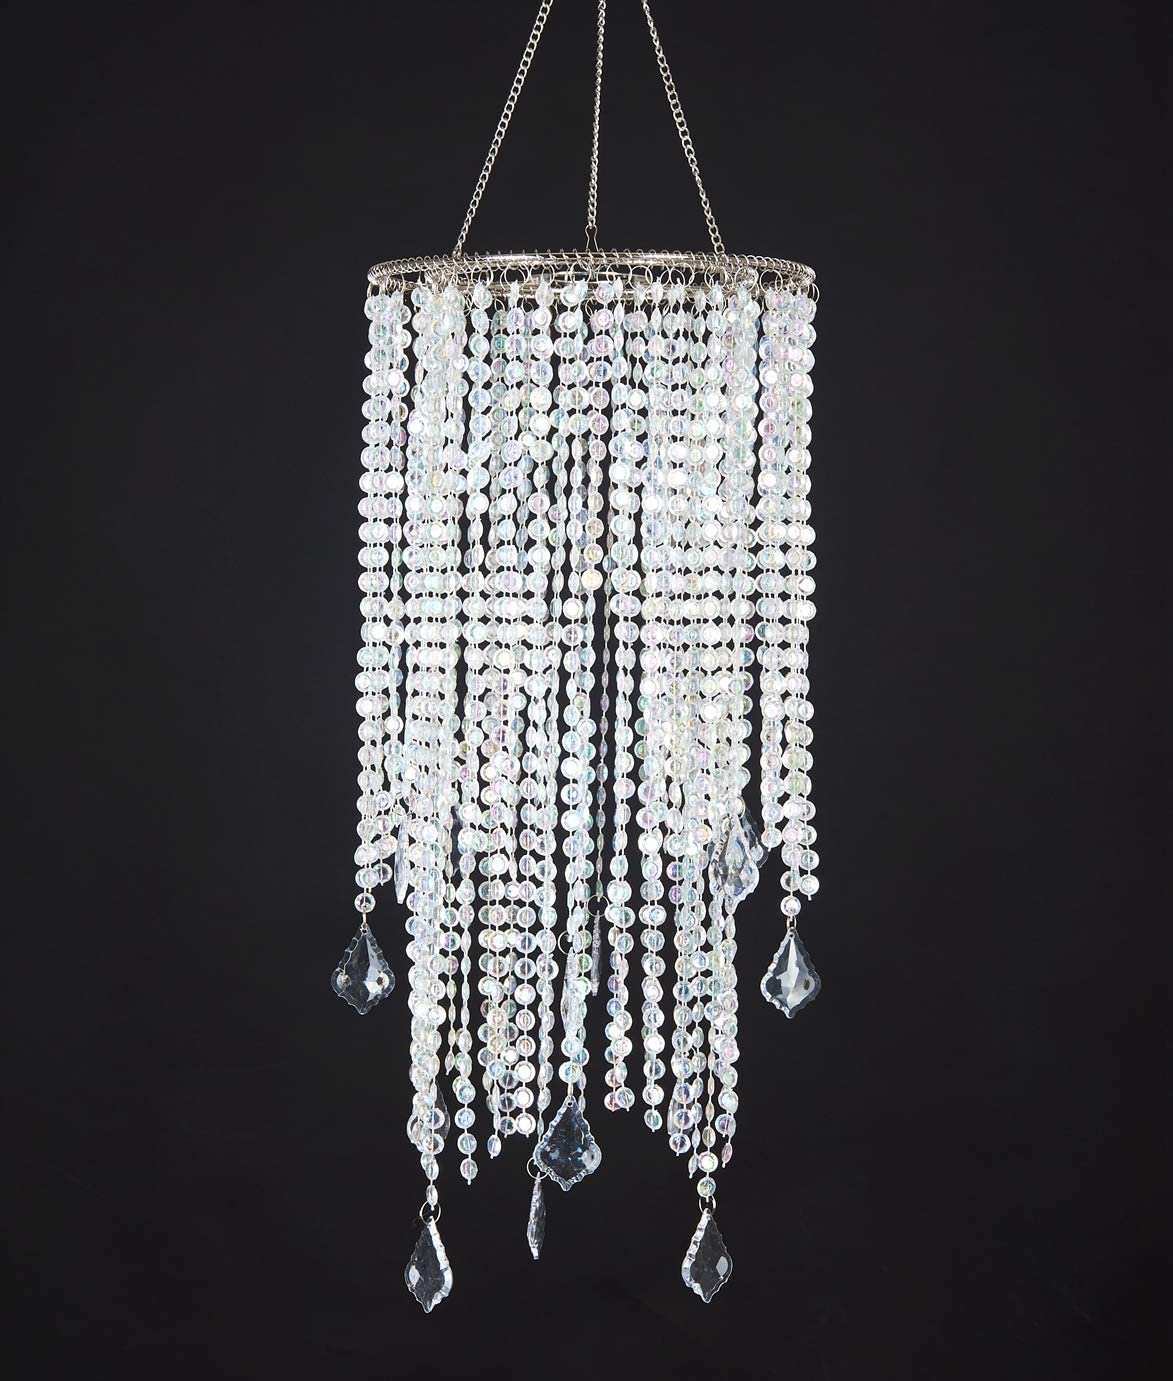 """2 Tiers Sparkling Iridescent Acrylic Beaded Hanging Chandelier, W8.5"""" X H20.5"""", Great idea for Wedding Chandeliers Centerpieces Decorations and any Event Party Home Decor - -"""